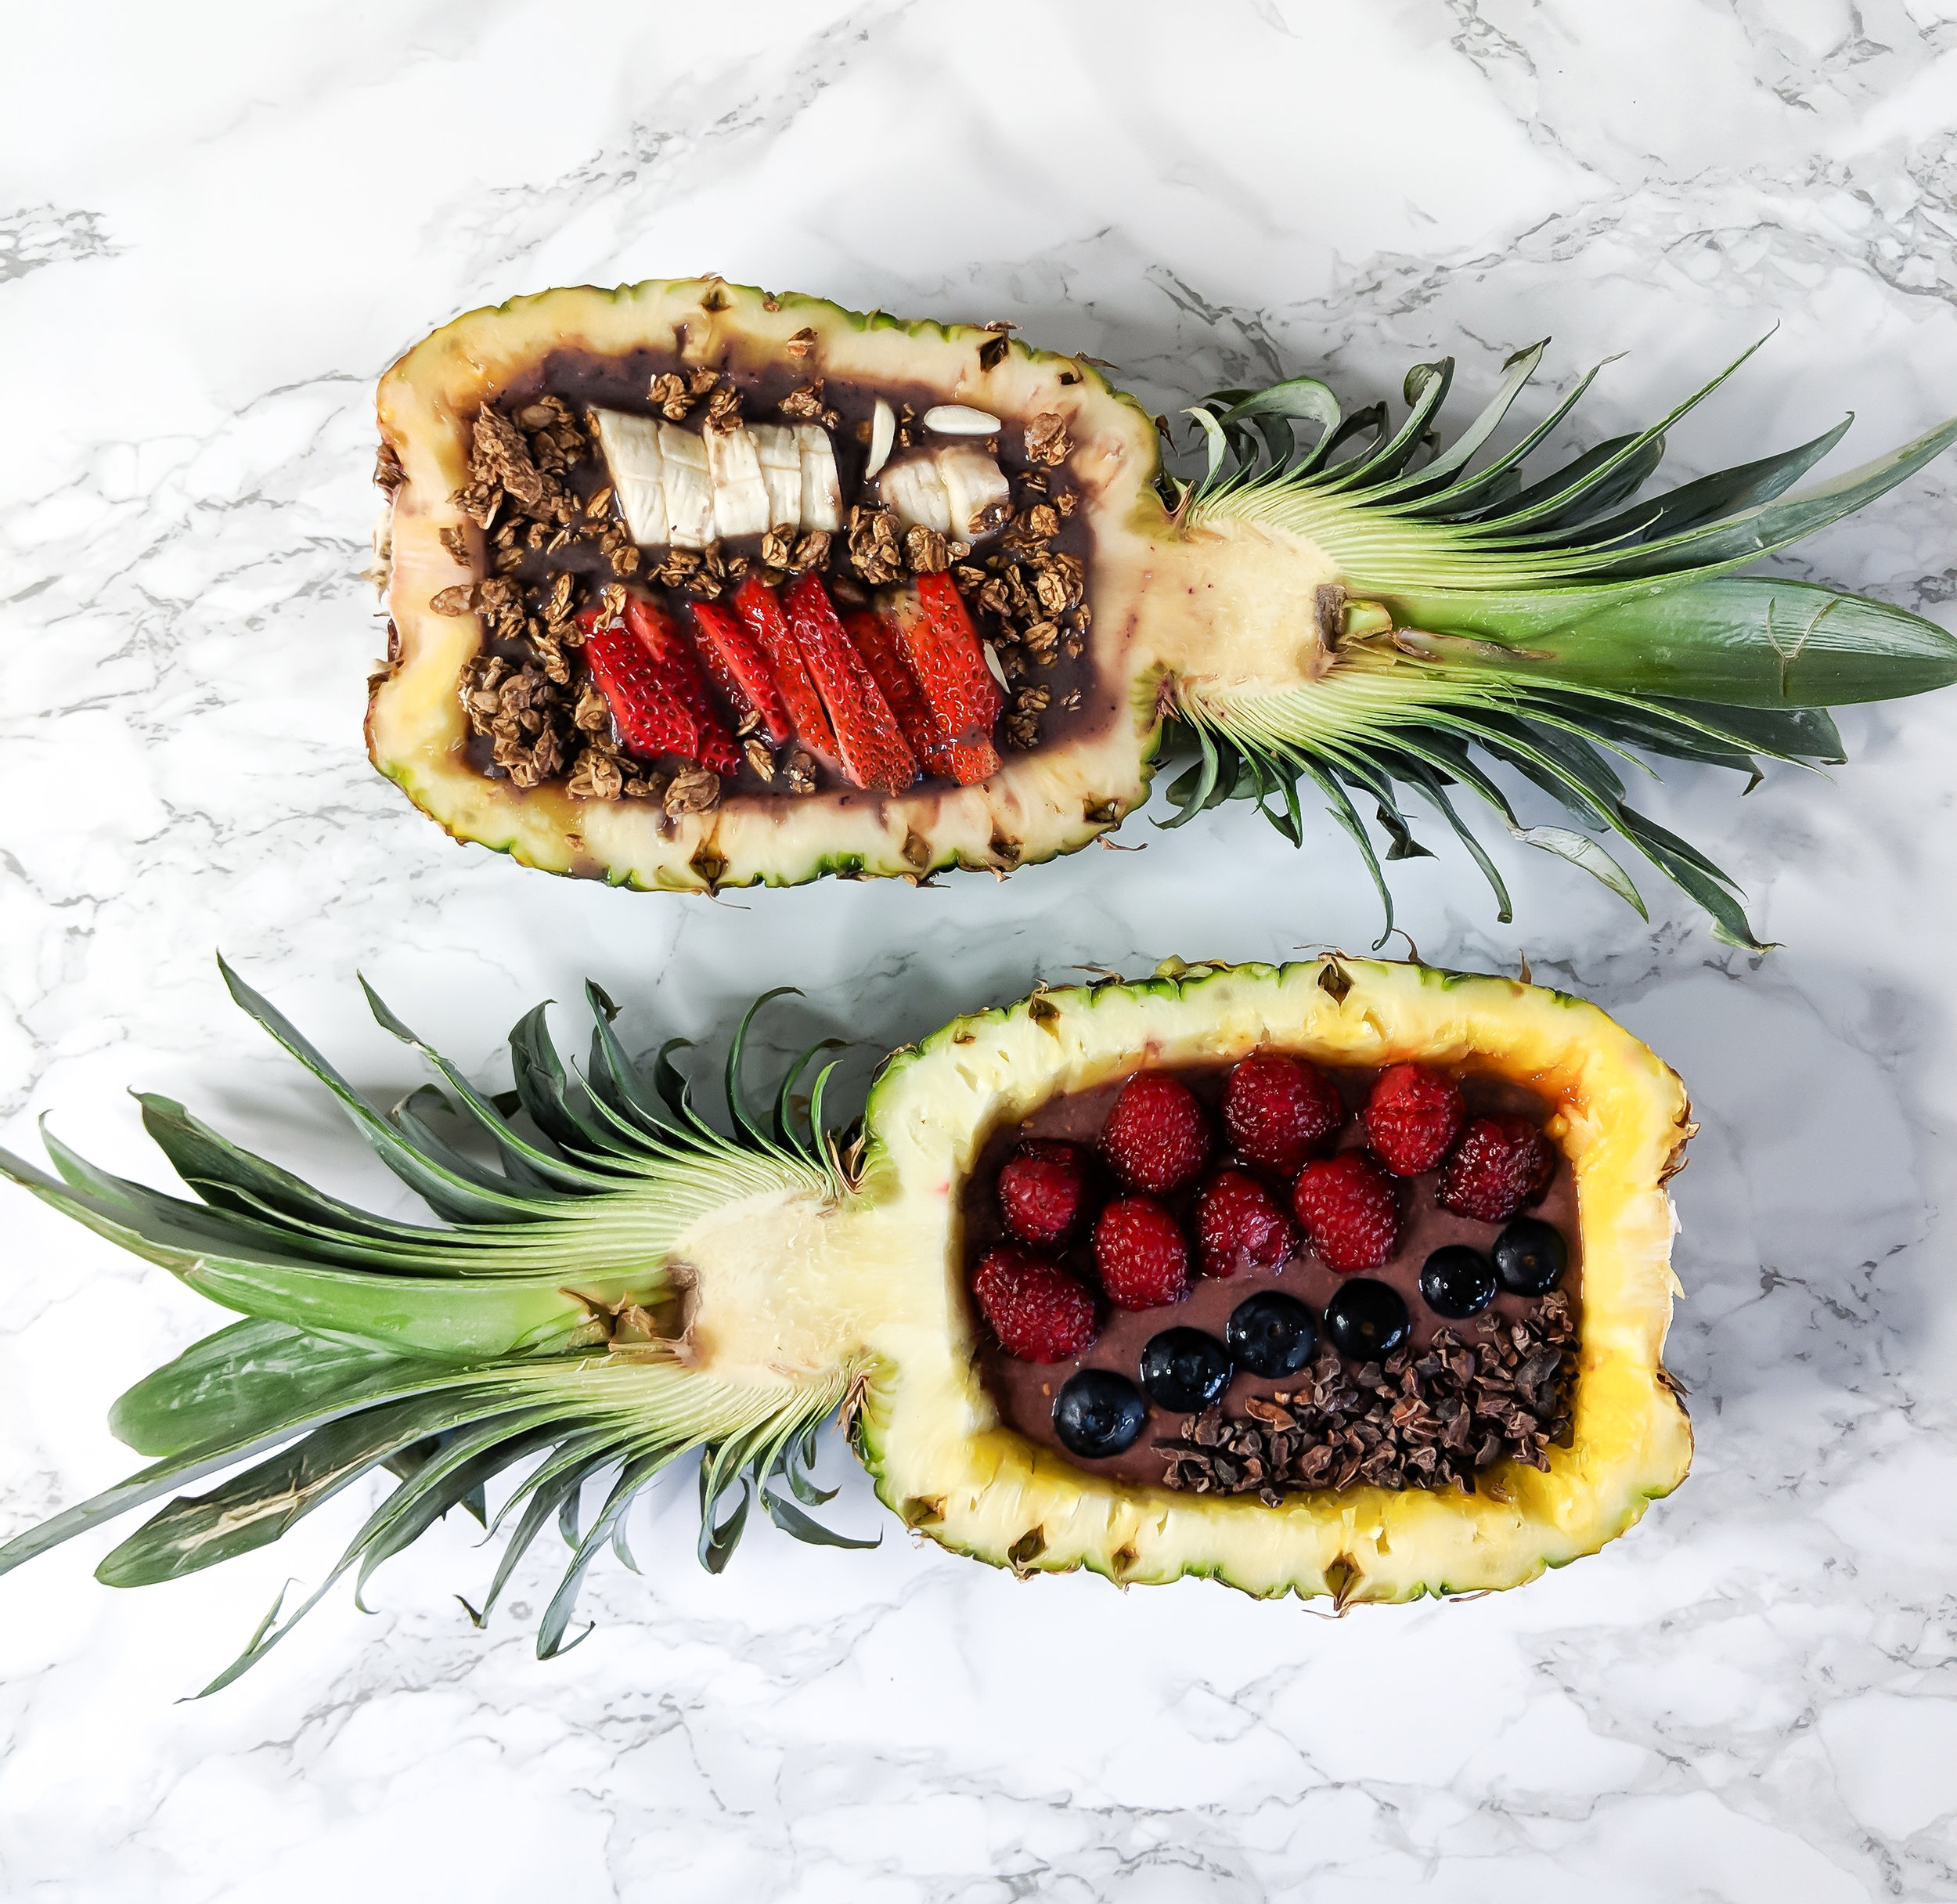 Acai Bowl - Ingredients:- 2 Acai Smoothie Packs -1 banana-1 cup blueberries or raspberries or quartered strawberries-1/2 cup almond milk (unsweetened)Toppings:-1/2 cup granola-1/2 banana (sliced)-1/4 cup blueberries, raspberries or quartered strawberries